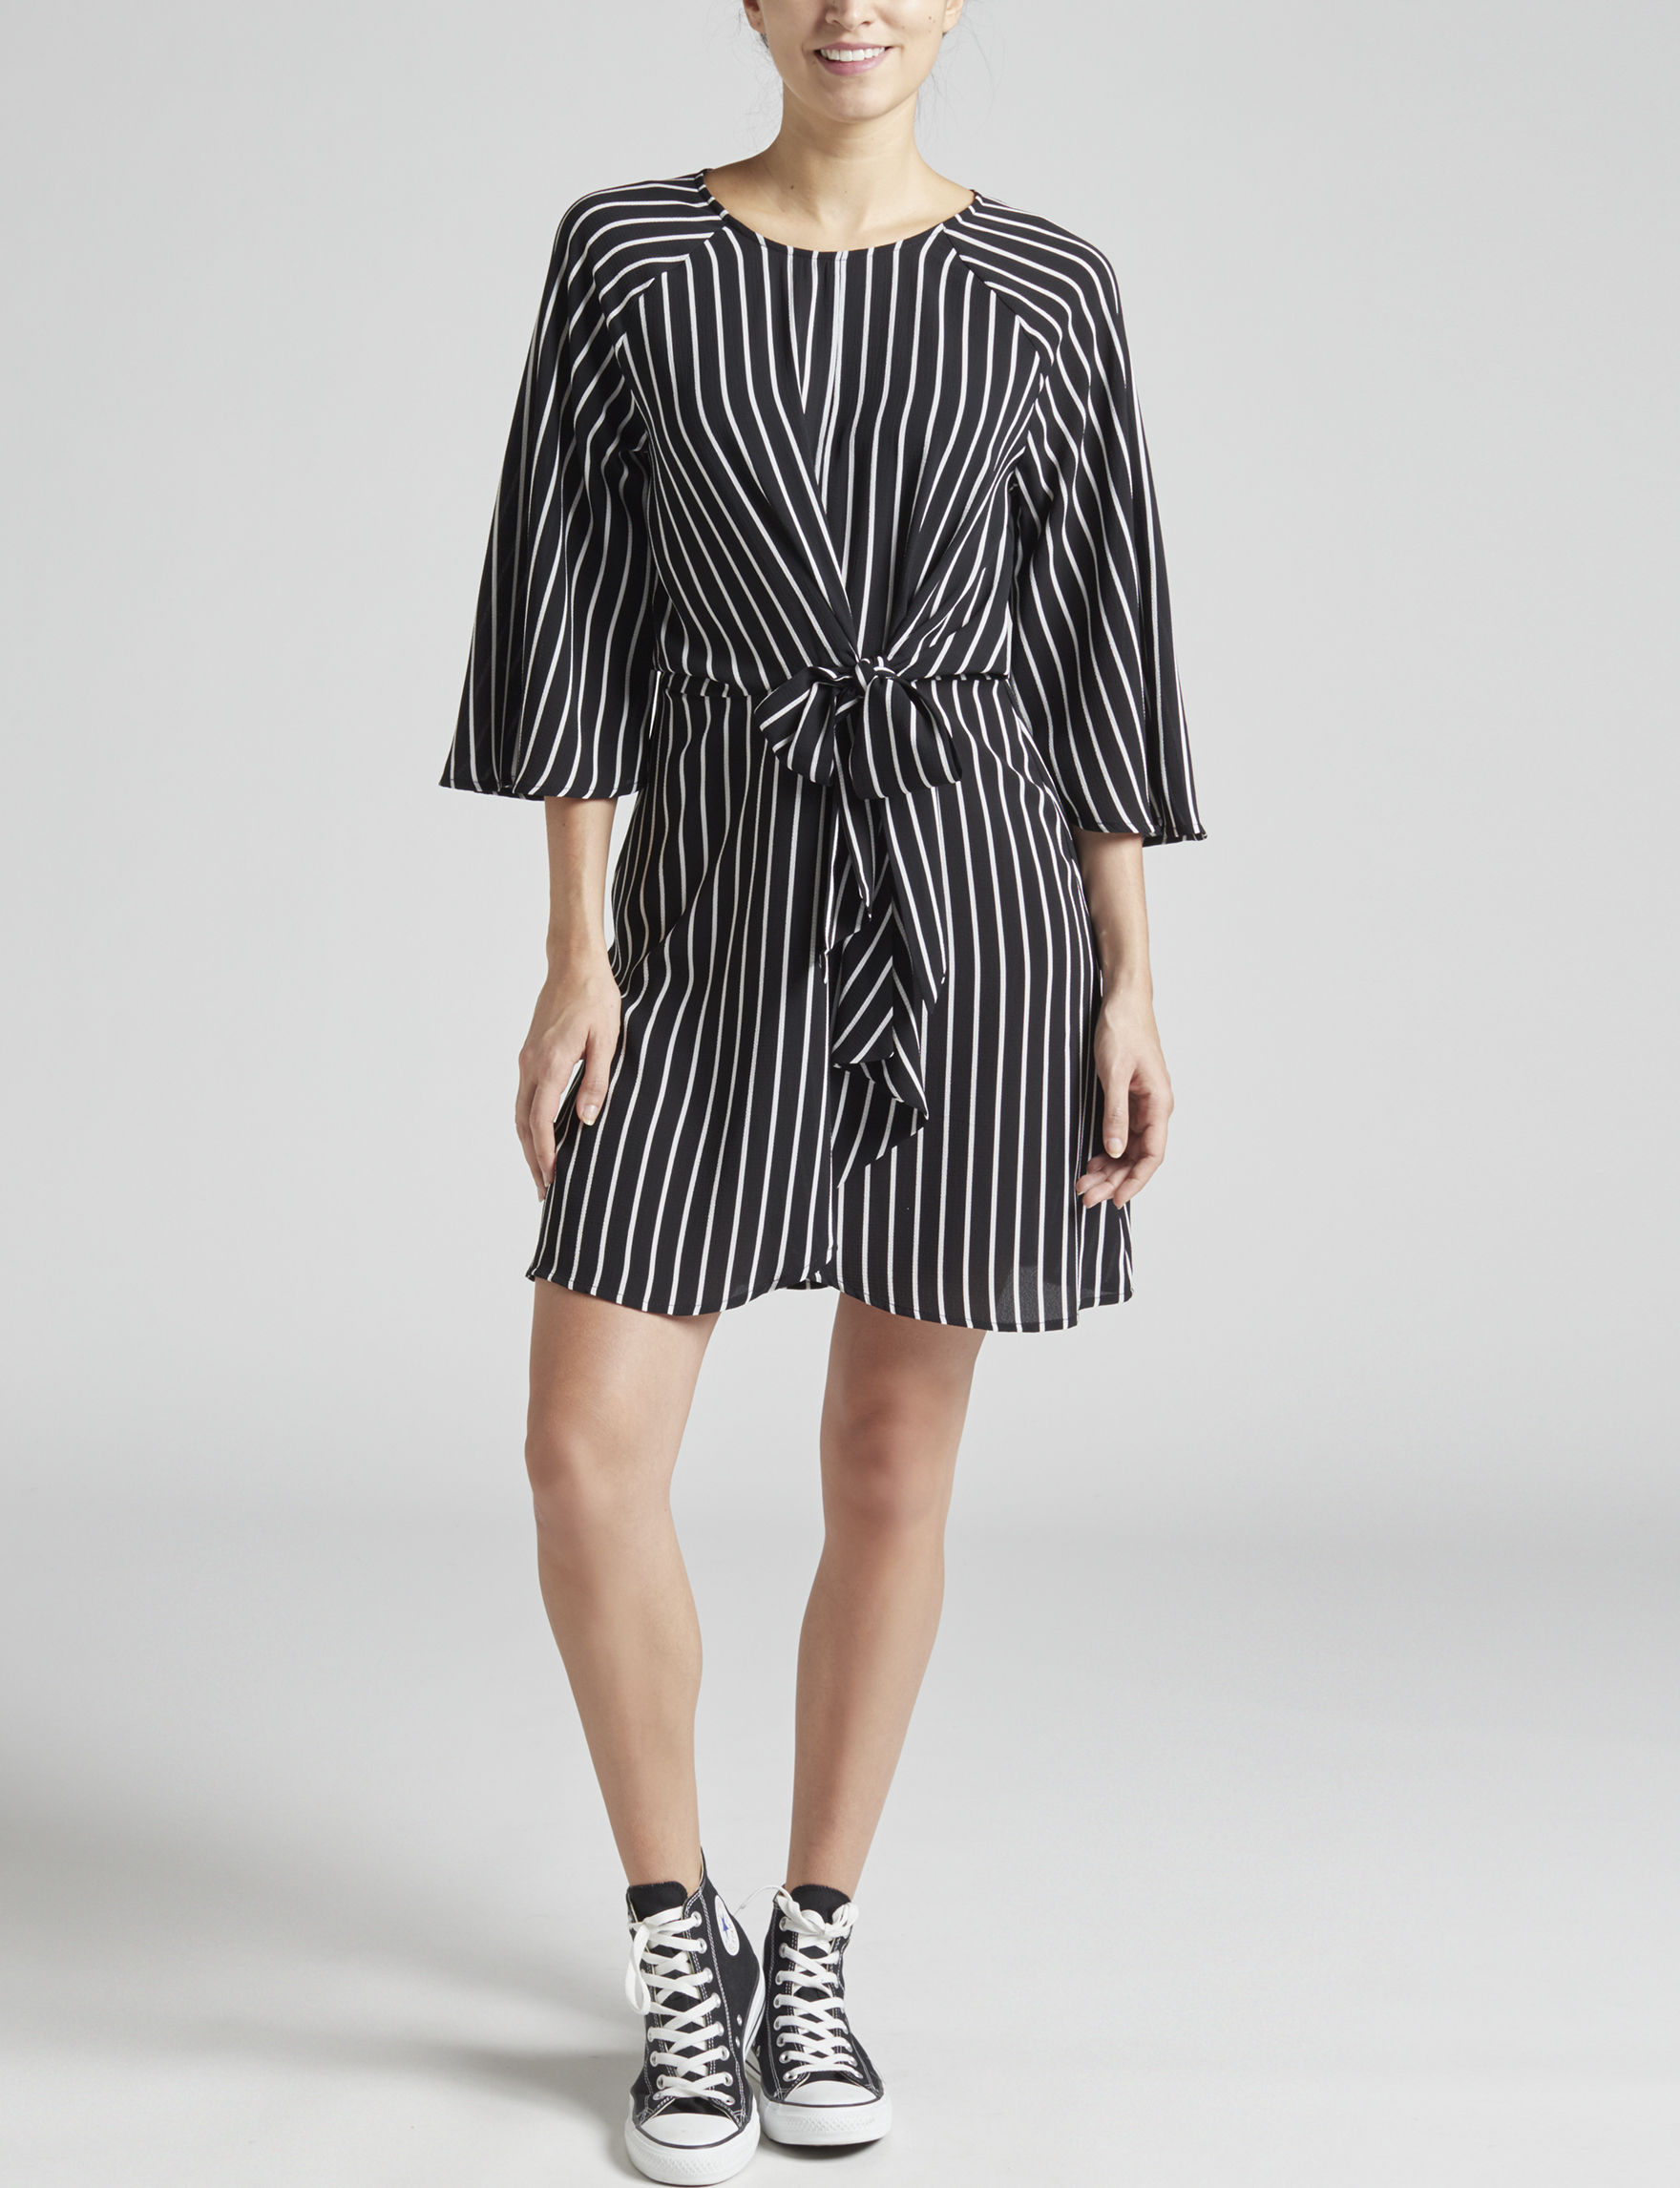 BeBop Black / White Everyday & Casual Fit & Flare Dresses